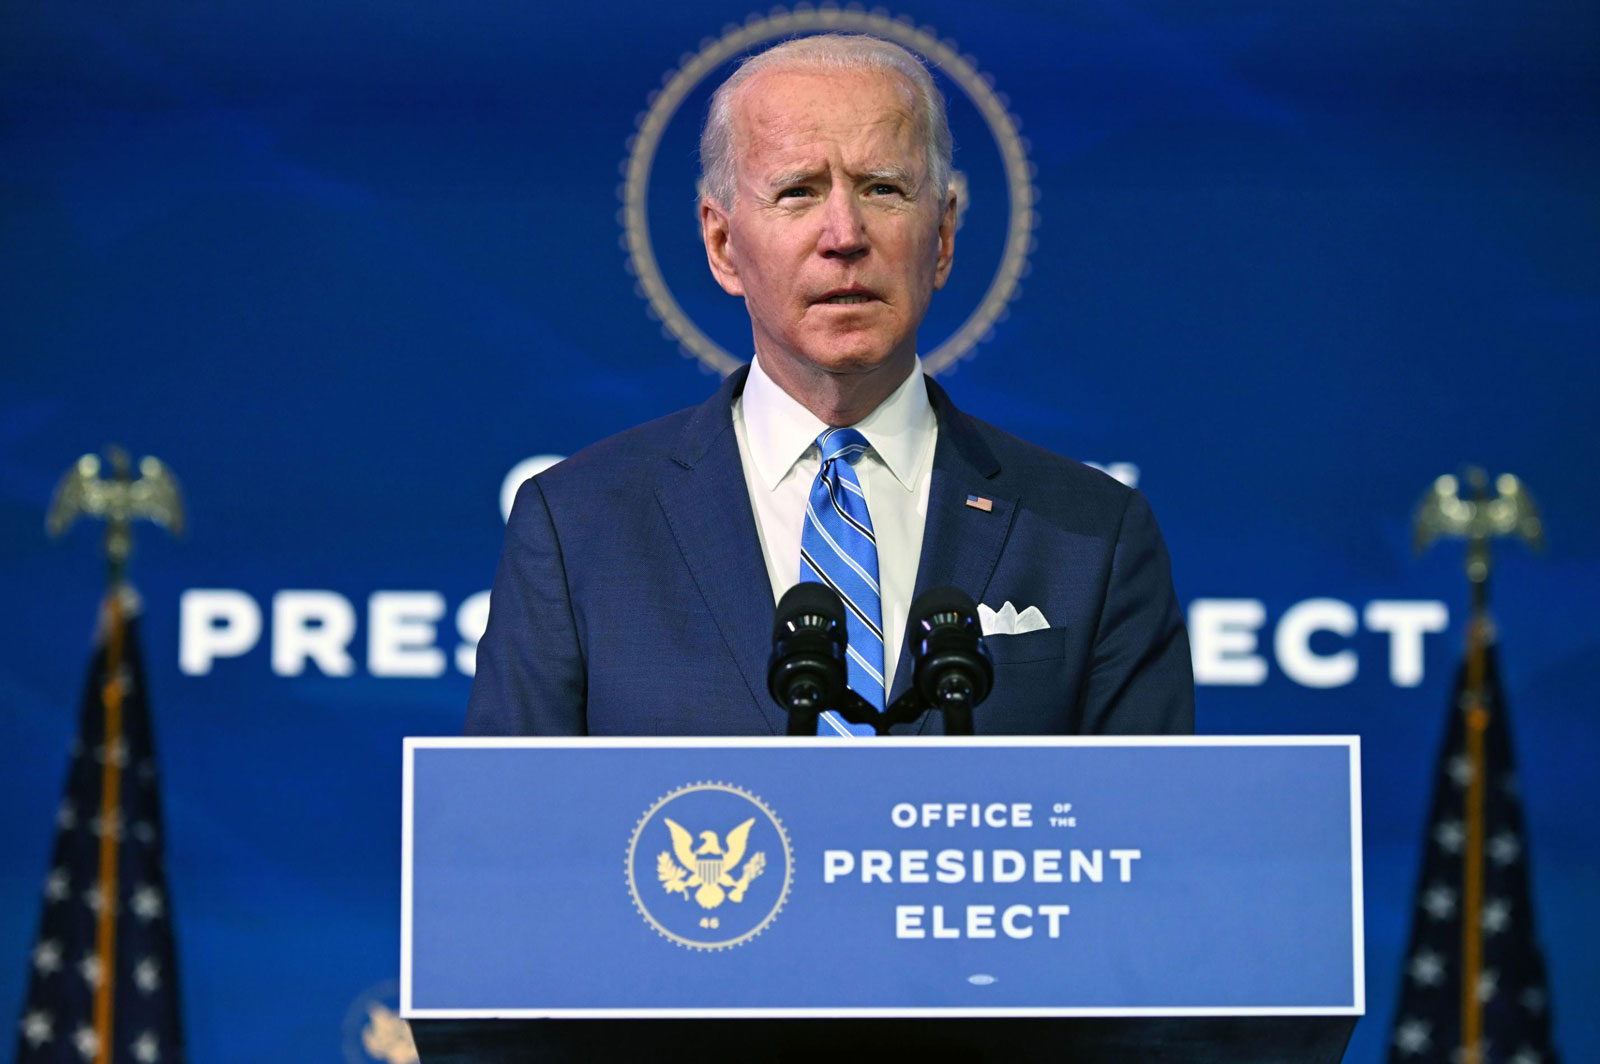 Biden will extend student loan payment deferrals until October